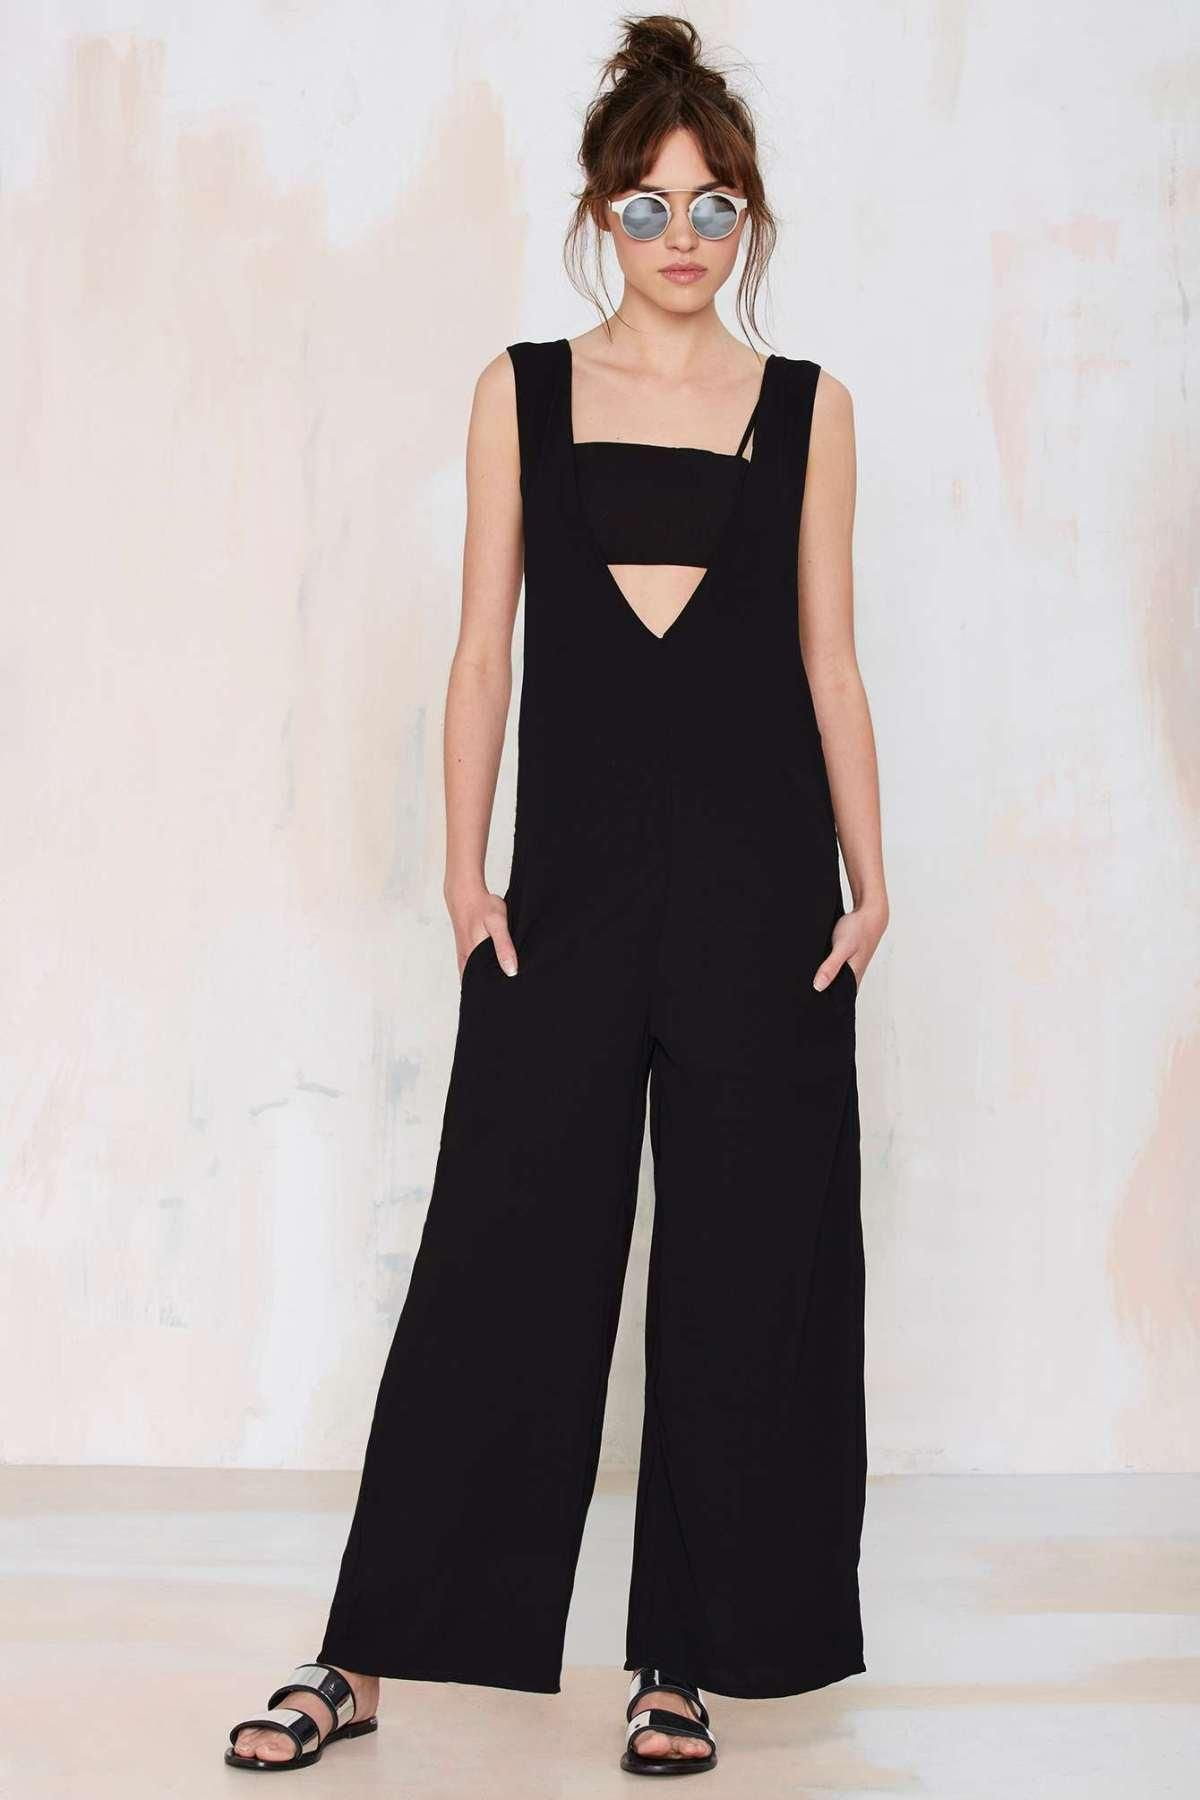 Stop Looking, We Found a Flawless Day-to-Night Jumpsuit ForSpring